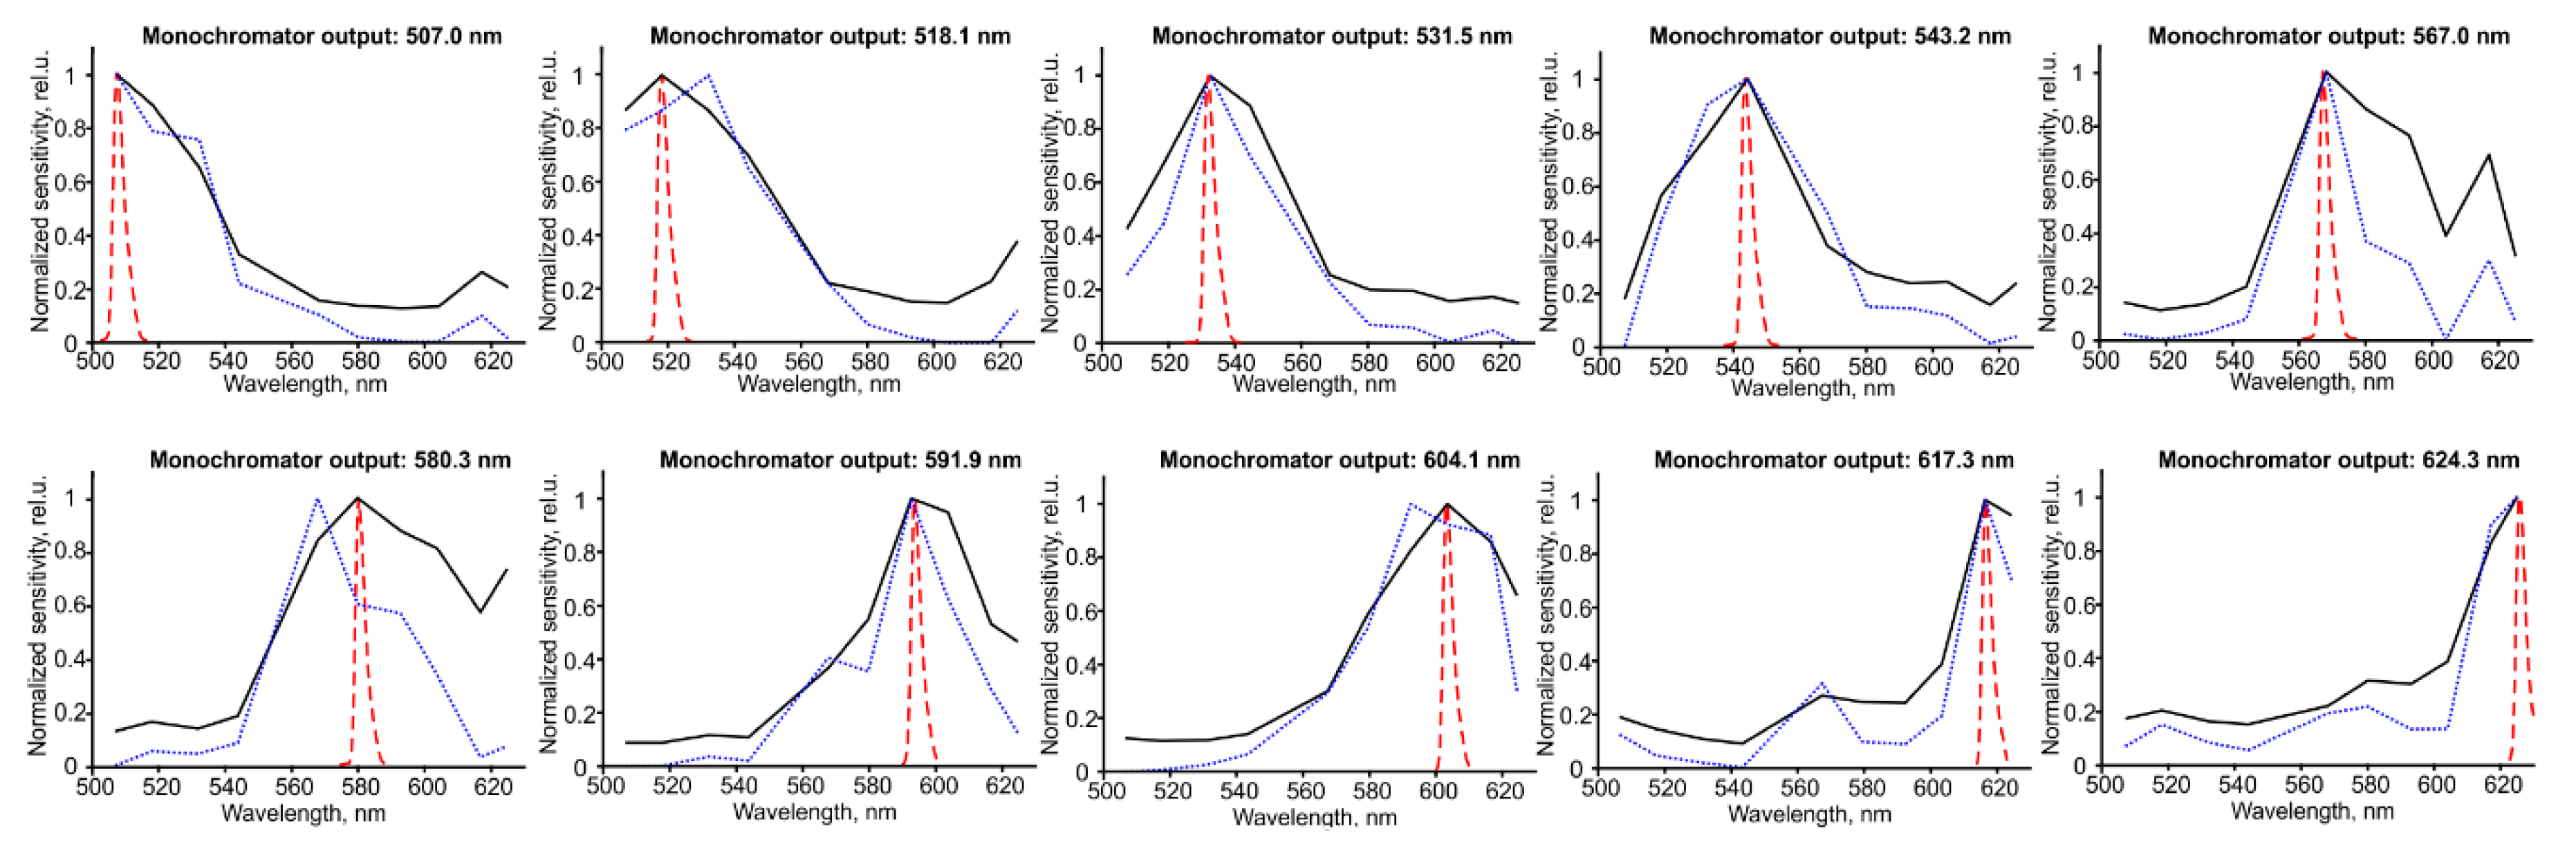 Biosensors | Free Full-Text | Multimodal Device for Real